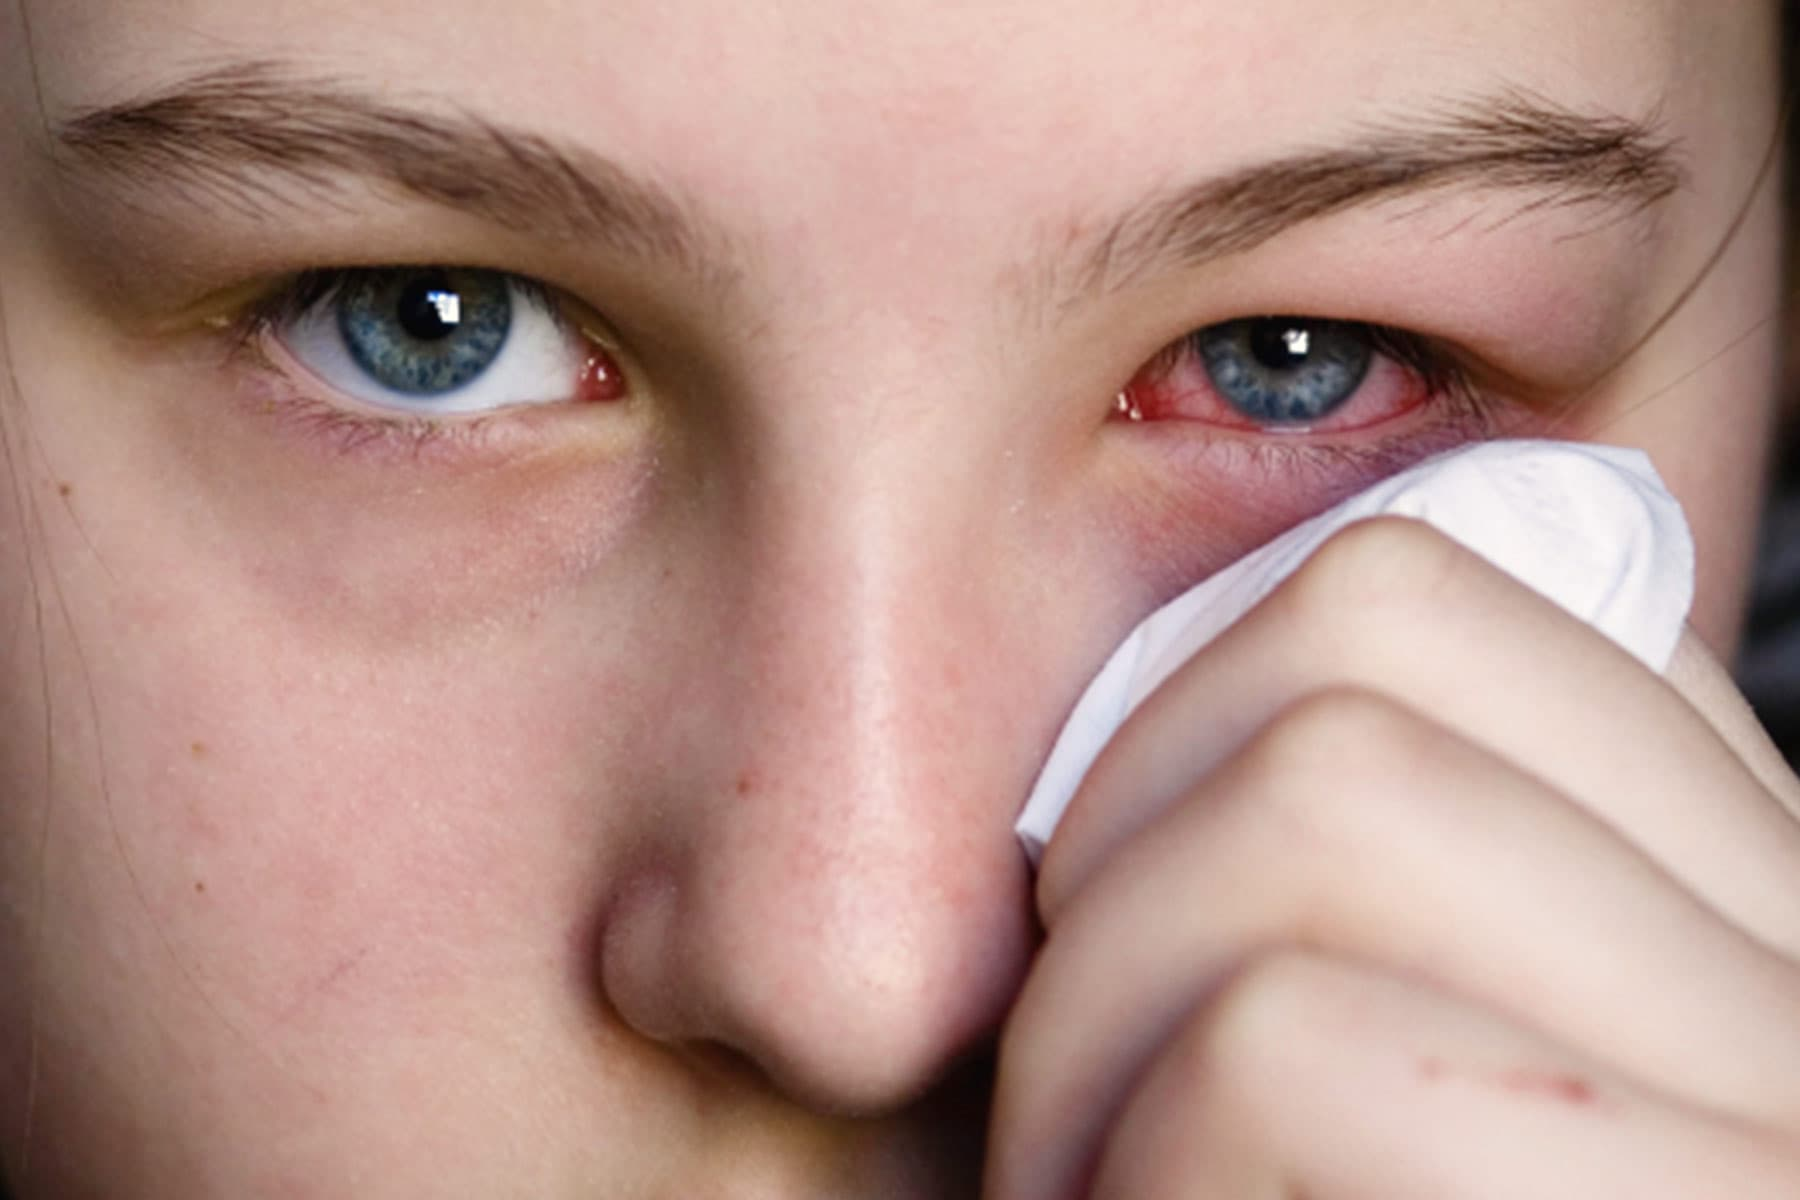 Pinkeye (Conjunctivitis) Pictures: What Pink Eye Looks